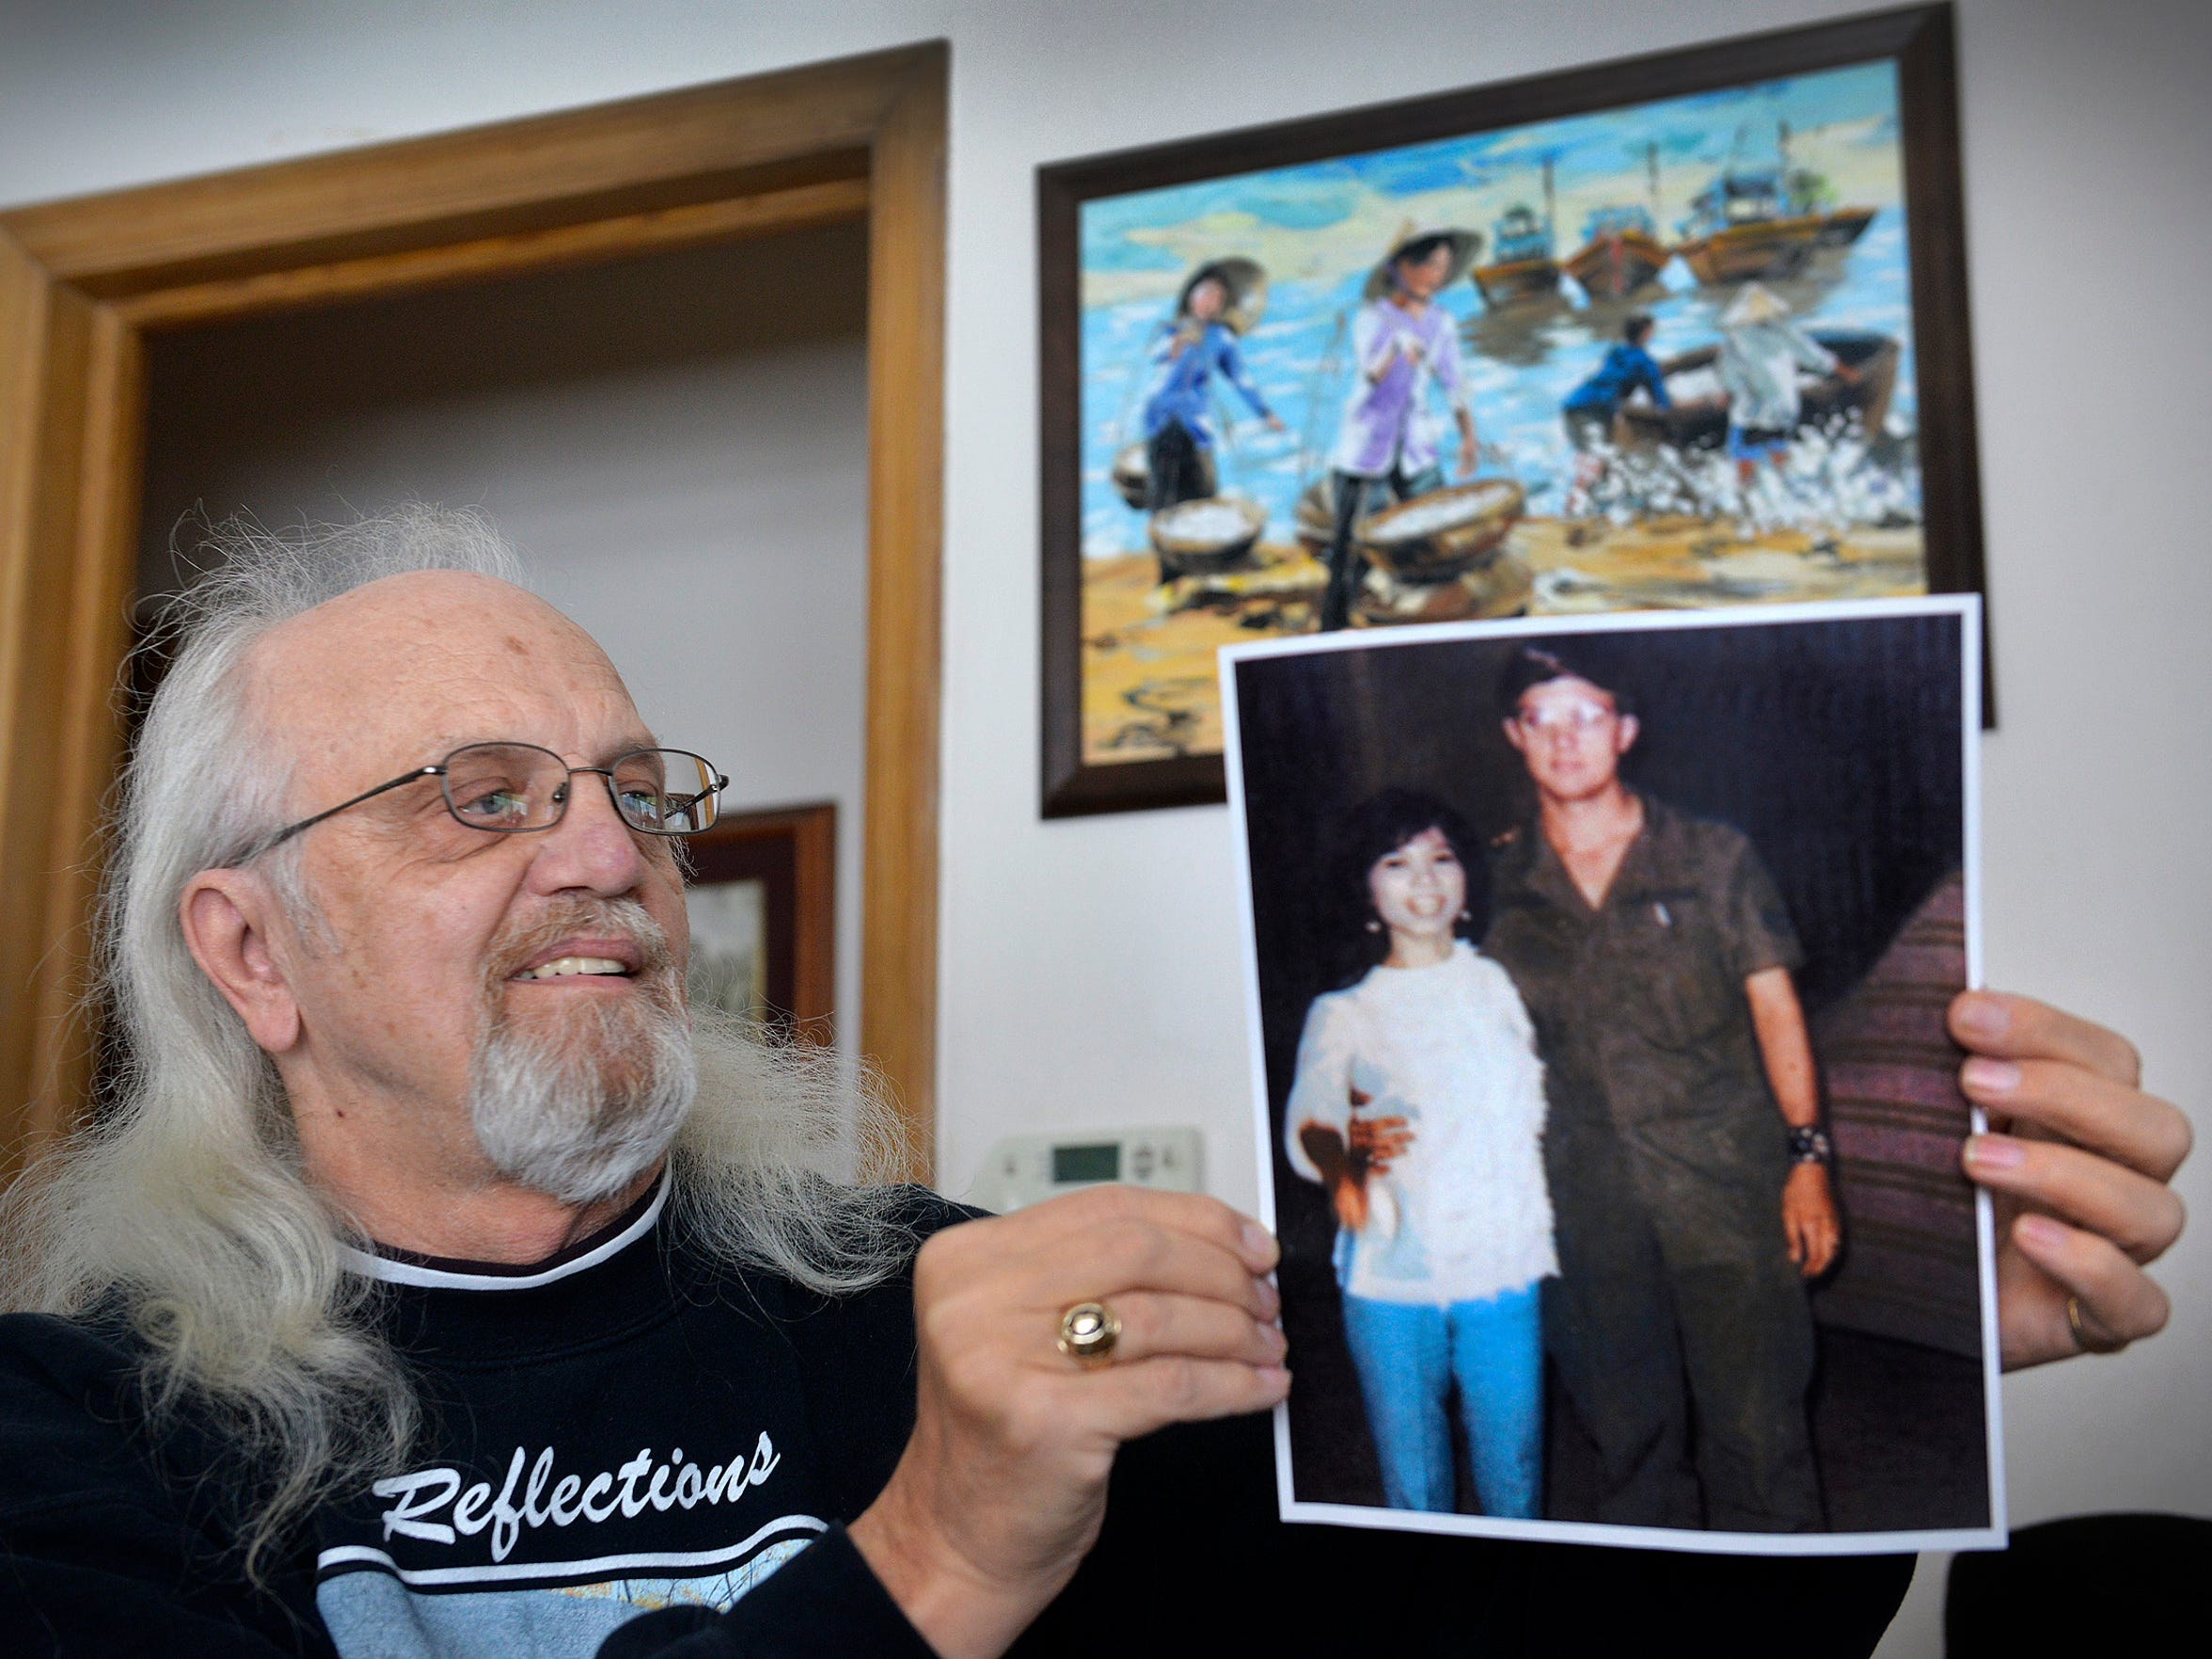 Reischl shows a photo of him with then girlfriend Kim Hoa when he was stationed in Vietnam as he talked Wednesday, Dec. 2 in his St. Cloud home.